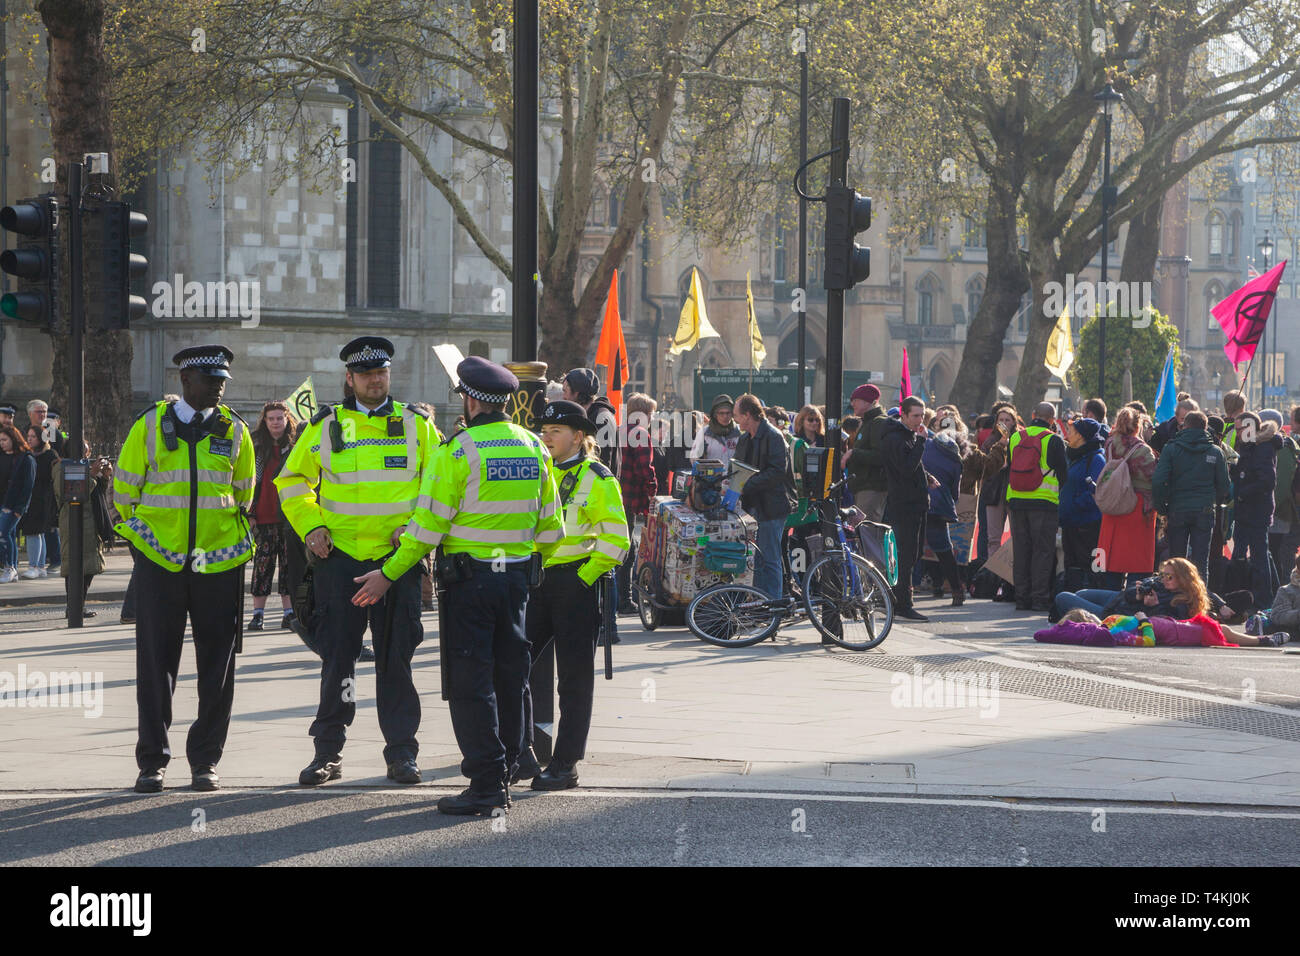 Metropolitan Police stand by on Parliament Square, Westminster for the Extinction Rebellion demonstration with protestors and banners behind - Stock Image